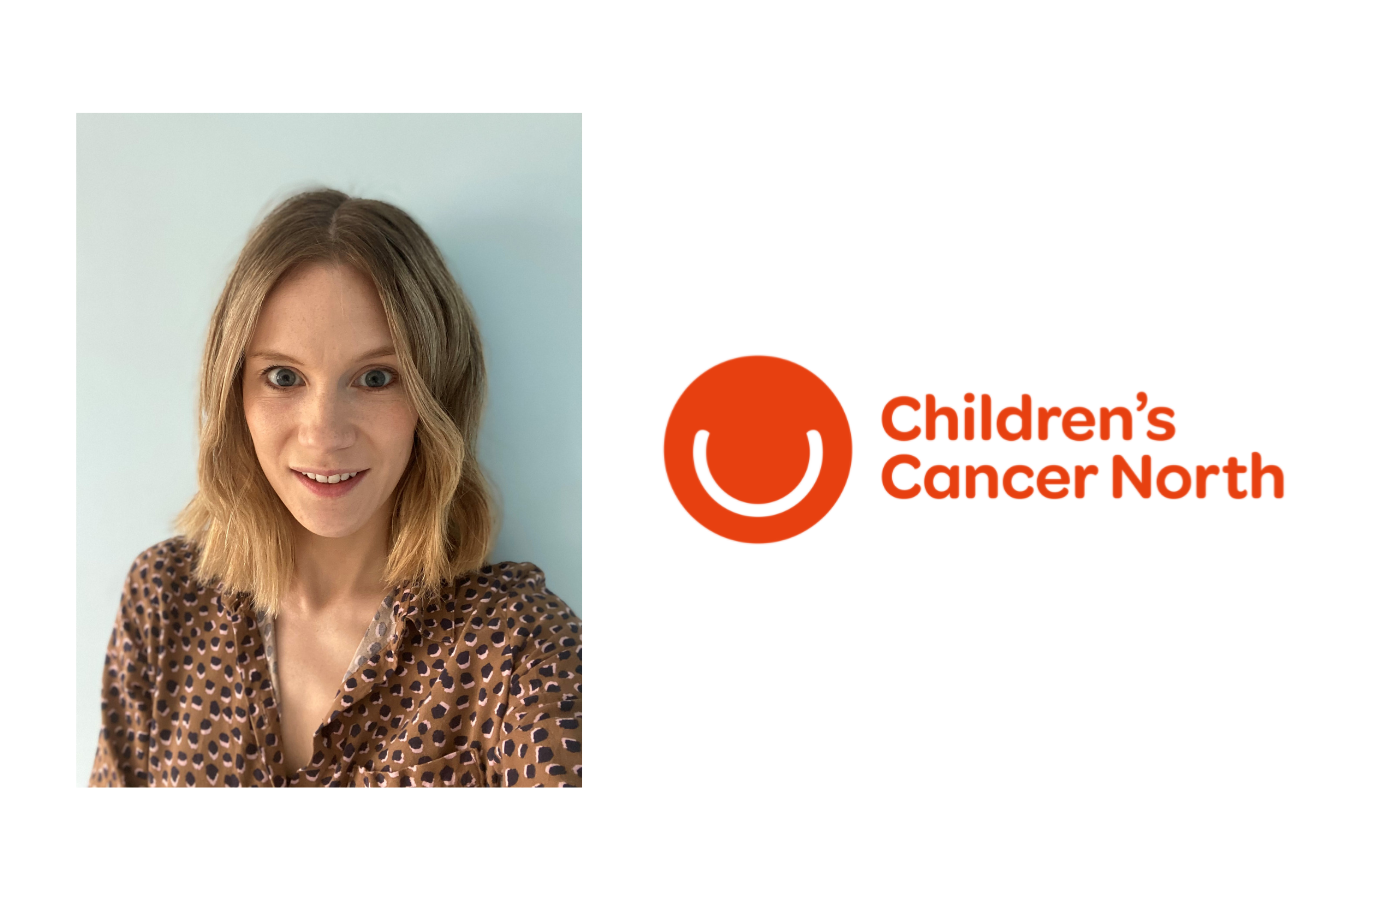 Image of Joy and Children's cancer north logo